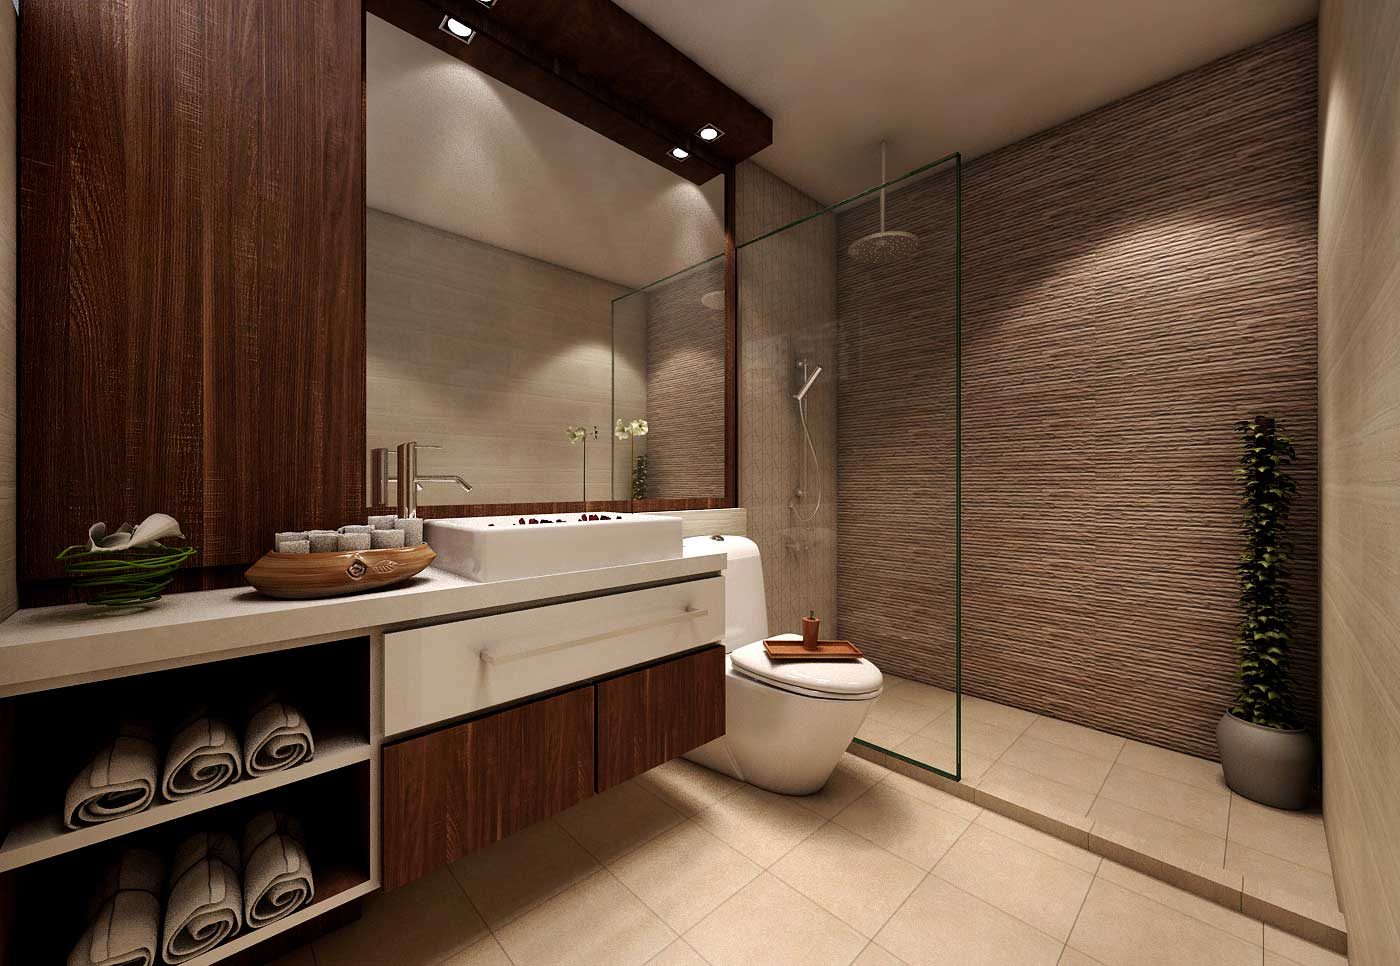 Home renovation singapore best home interior design for Bathroom ideas 1920s home